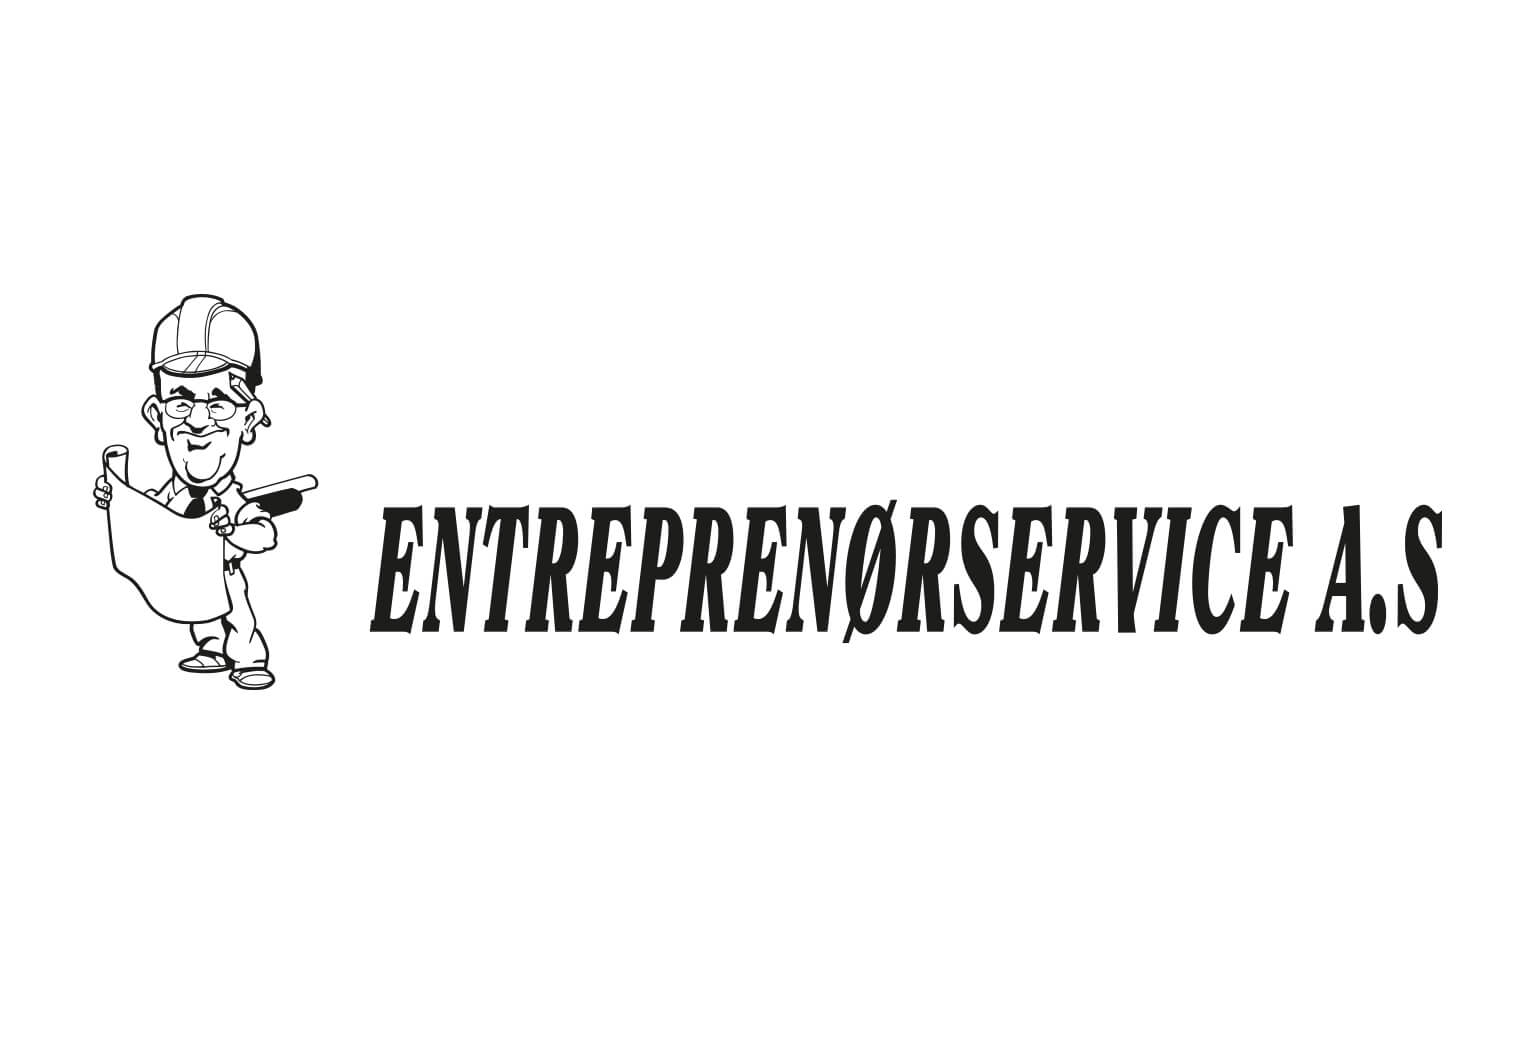 Entrepenørservice AS logo